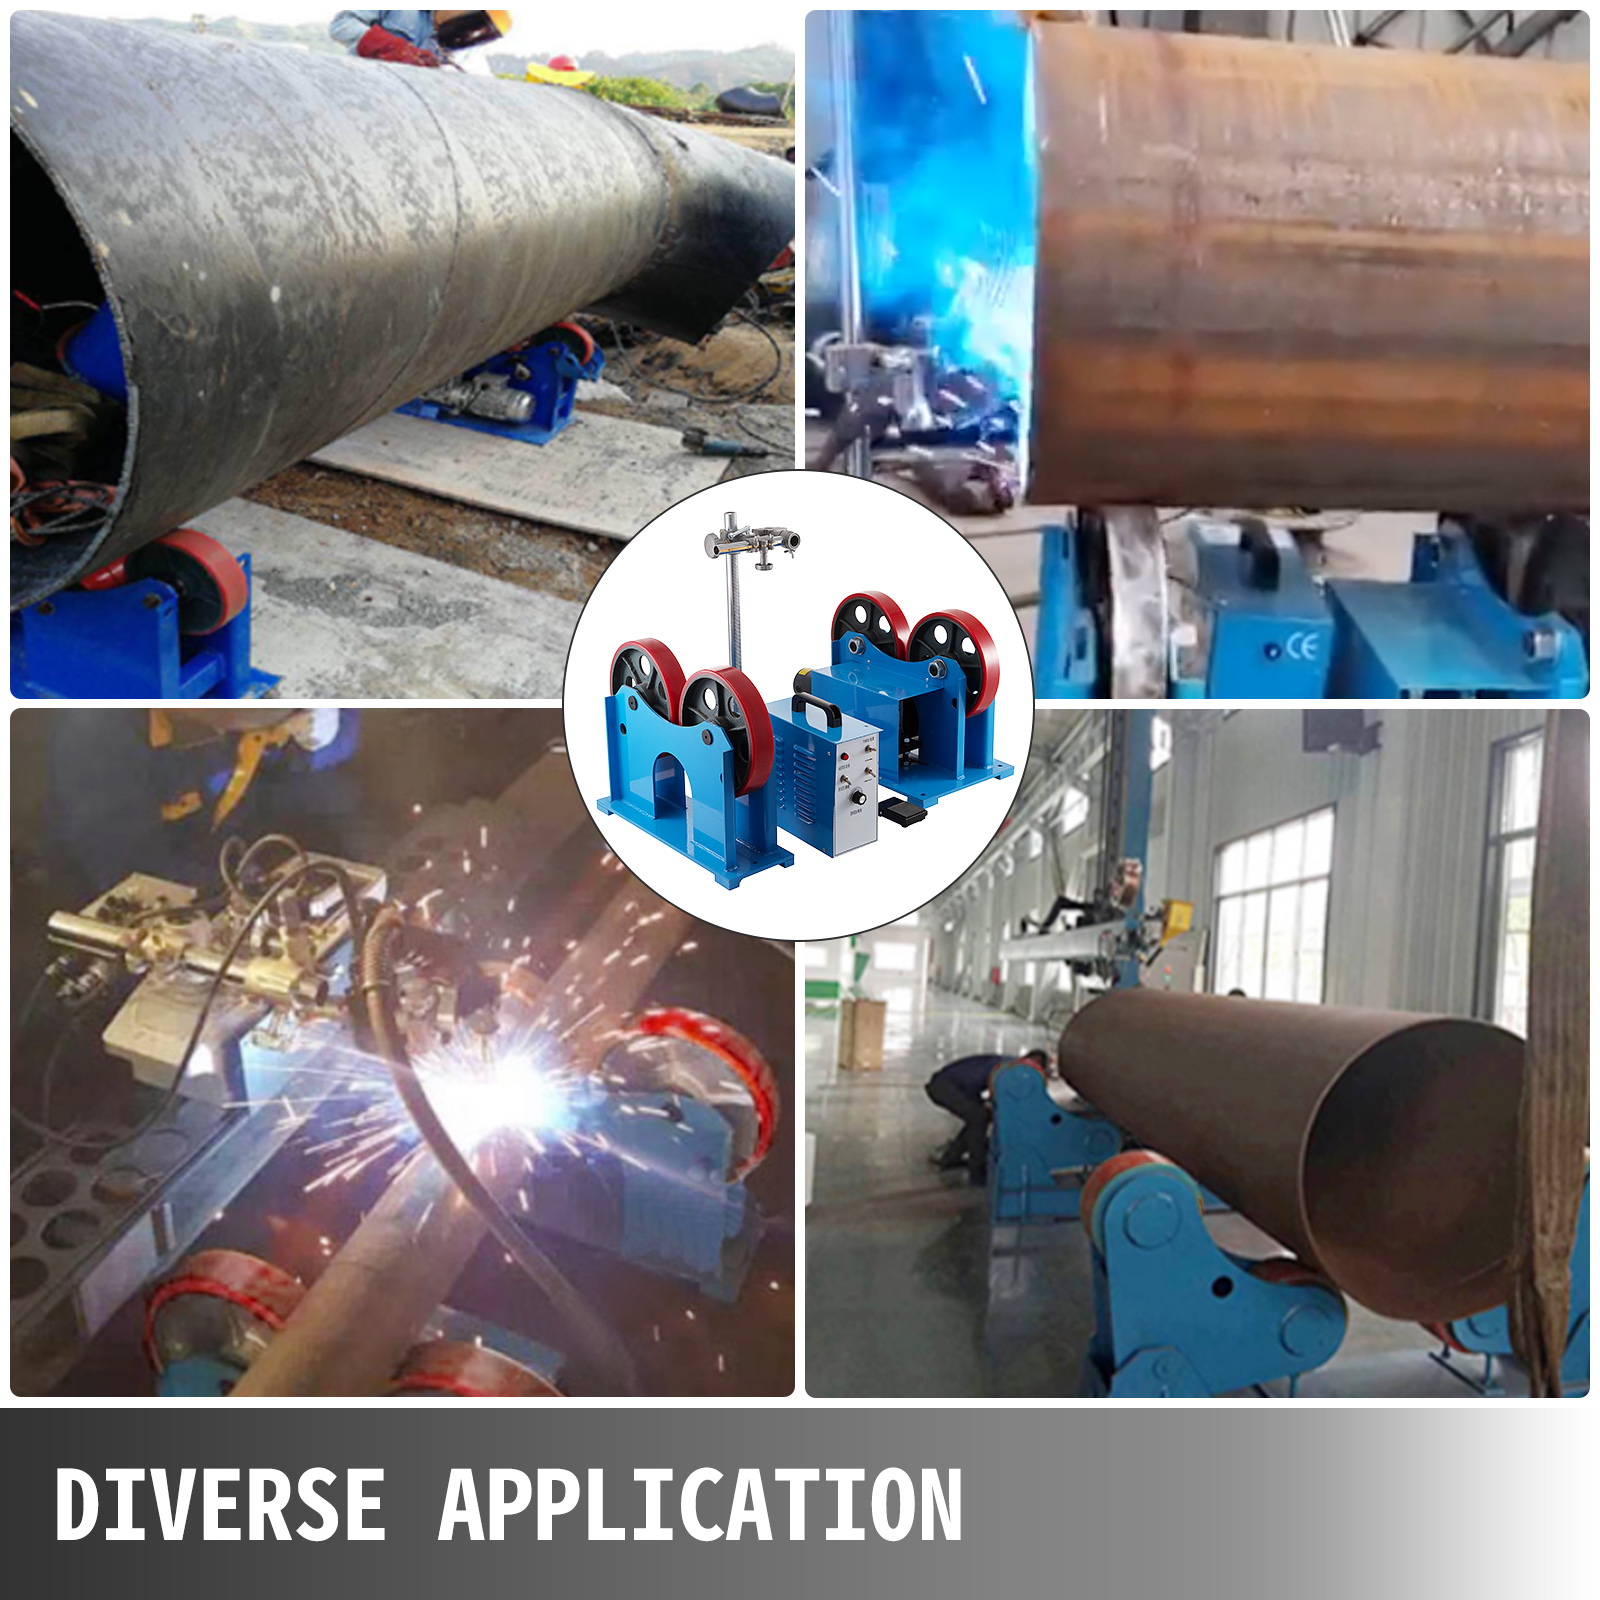 CNC, Metalworking & Manufacturing Welding Turning Roll Weld ...